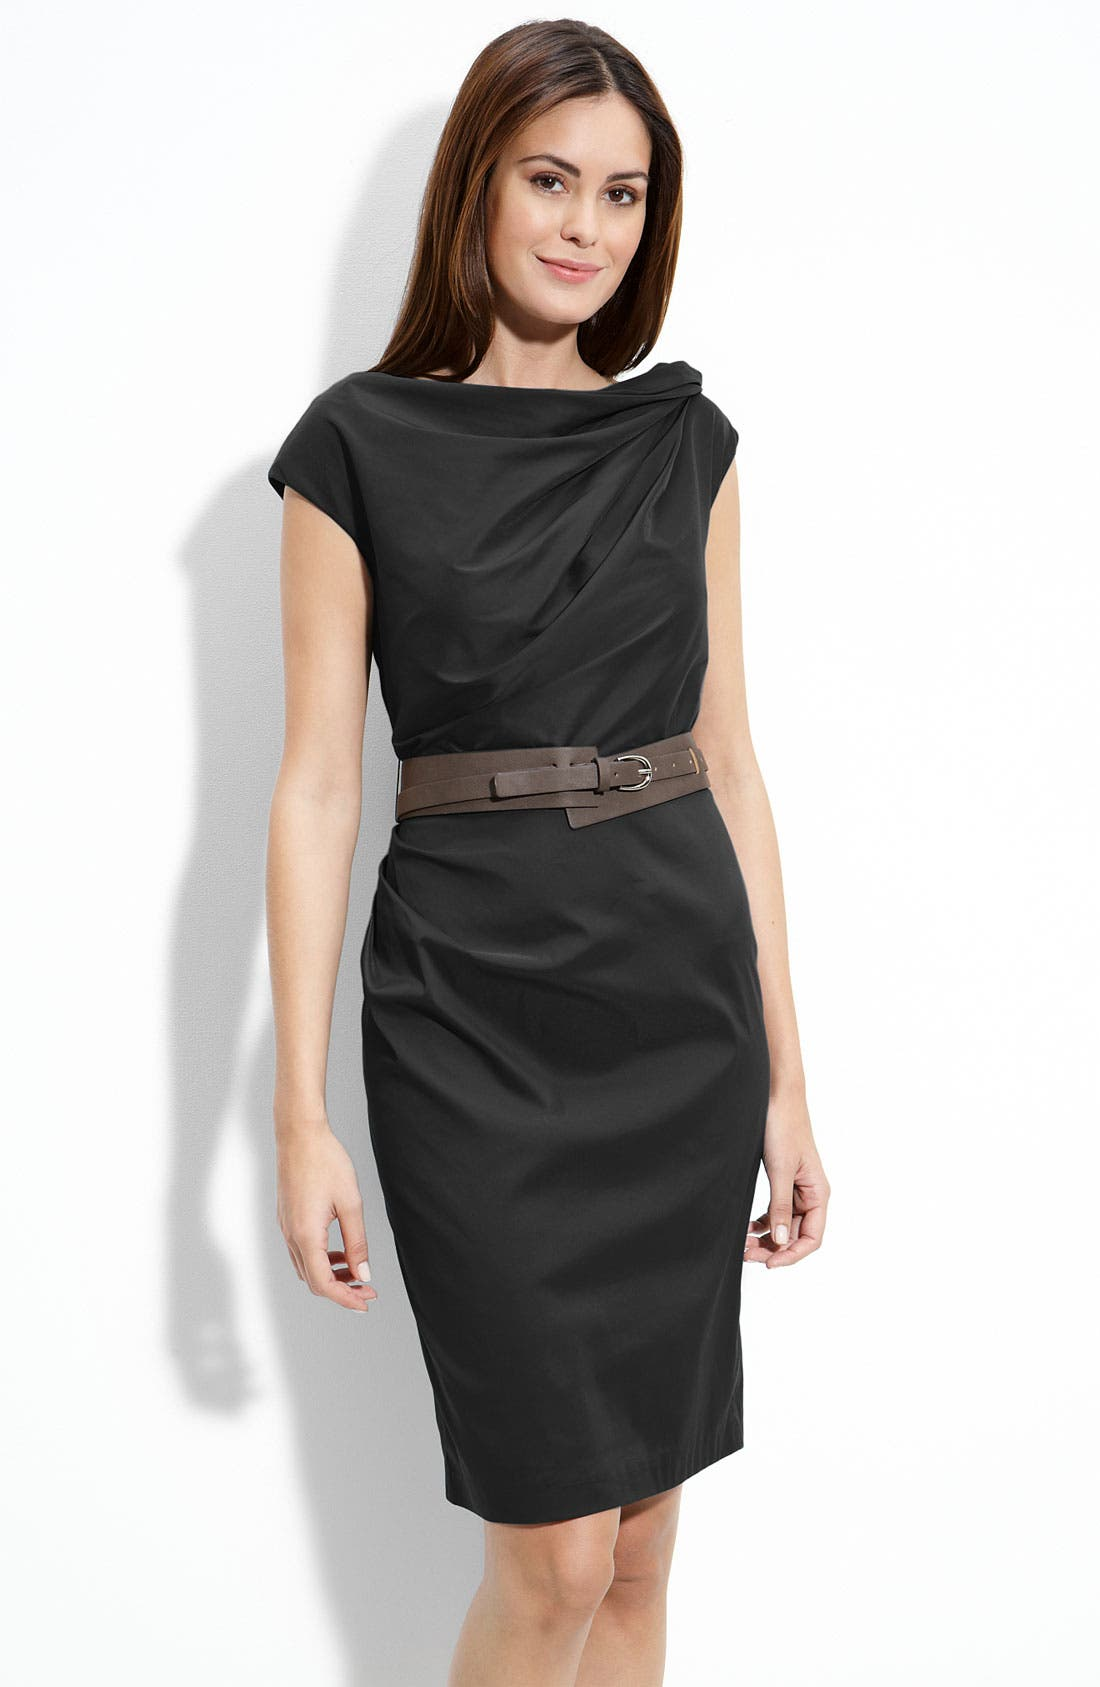 Alternate Image 1 Selected - Suzi Chin for Maggy Boutique Twist Neck Belted Sheath Dress (Petite)